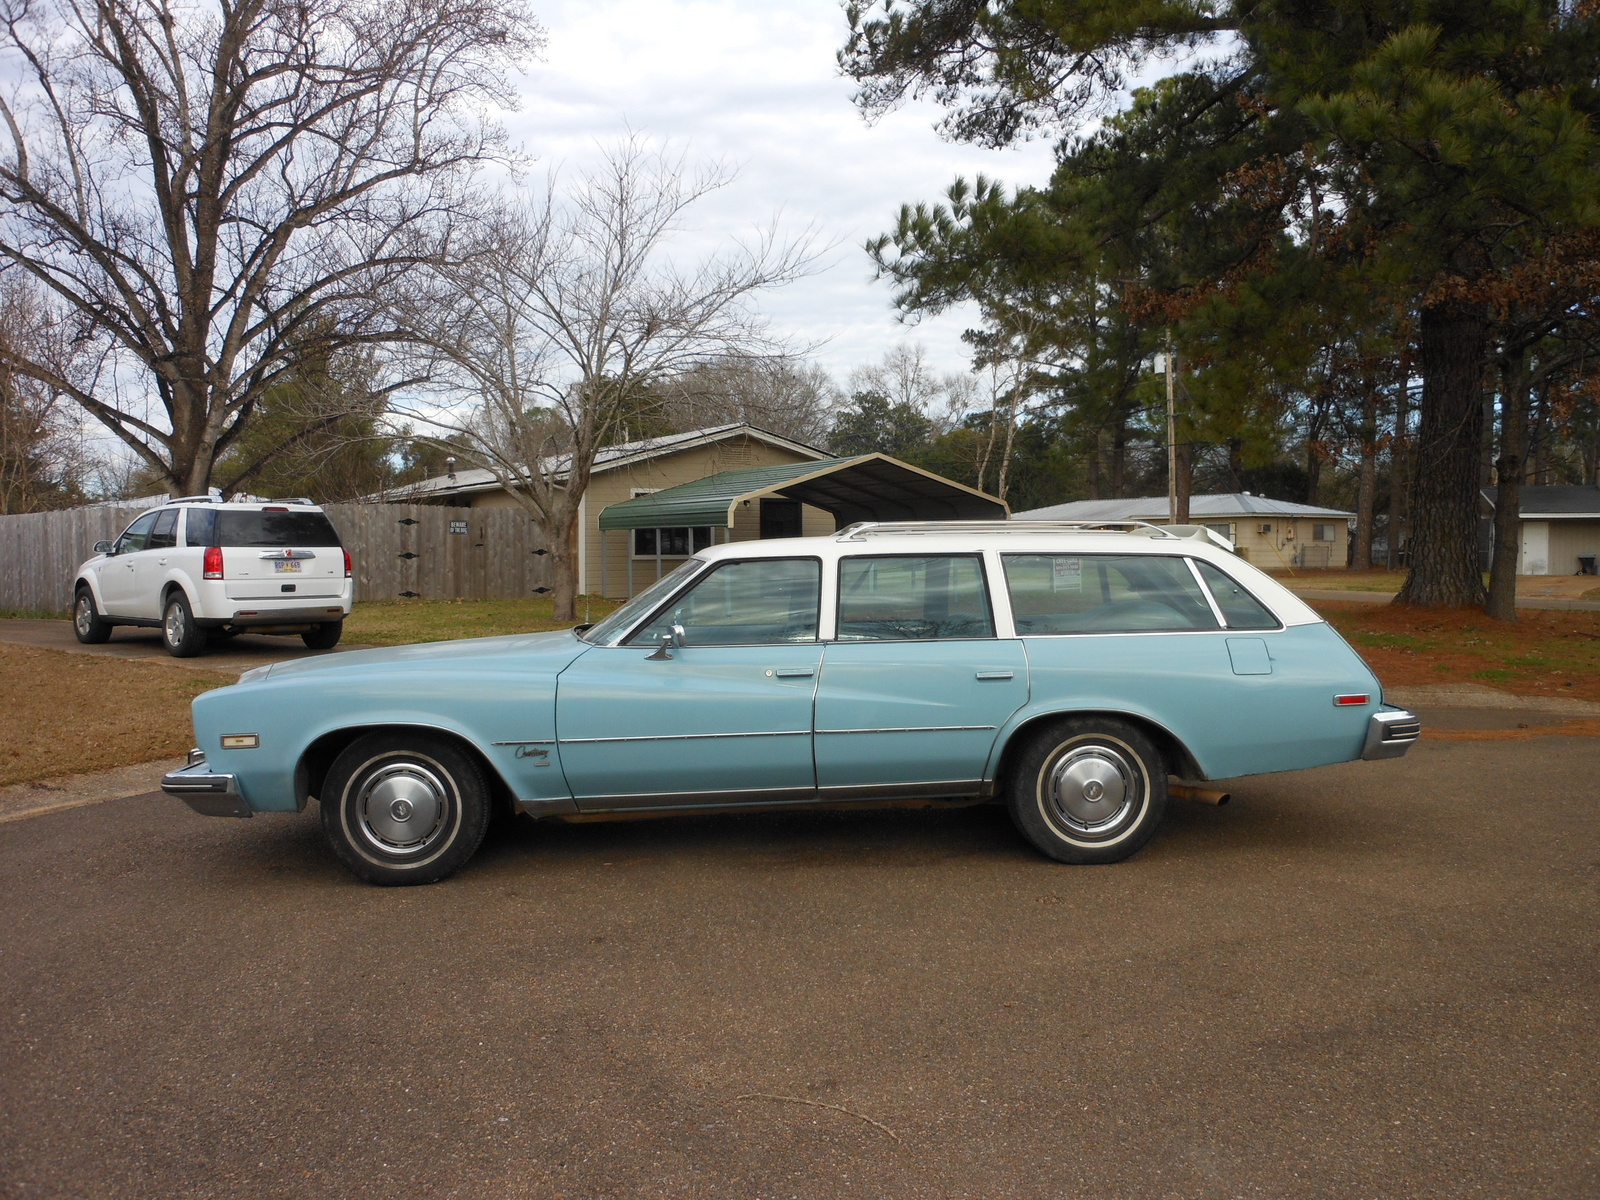 Buick Century Pic on 1989 Buick Electra Park Avenue